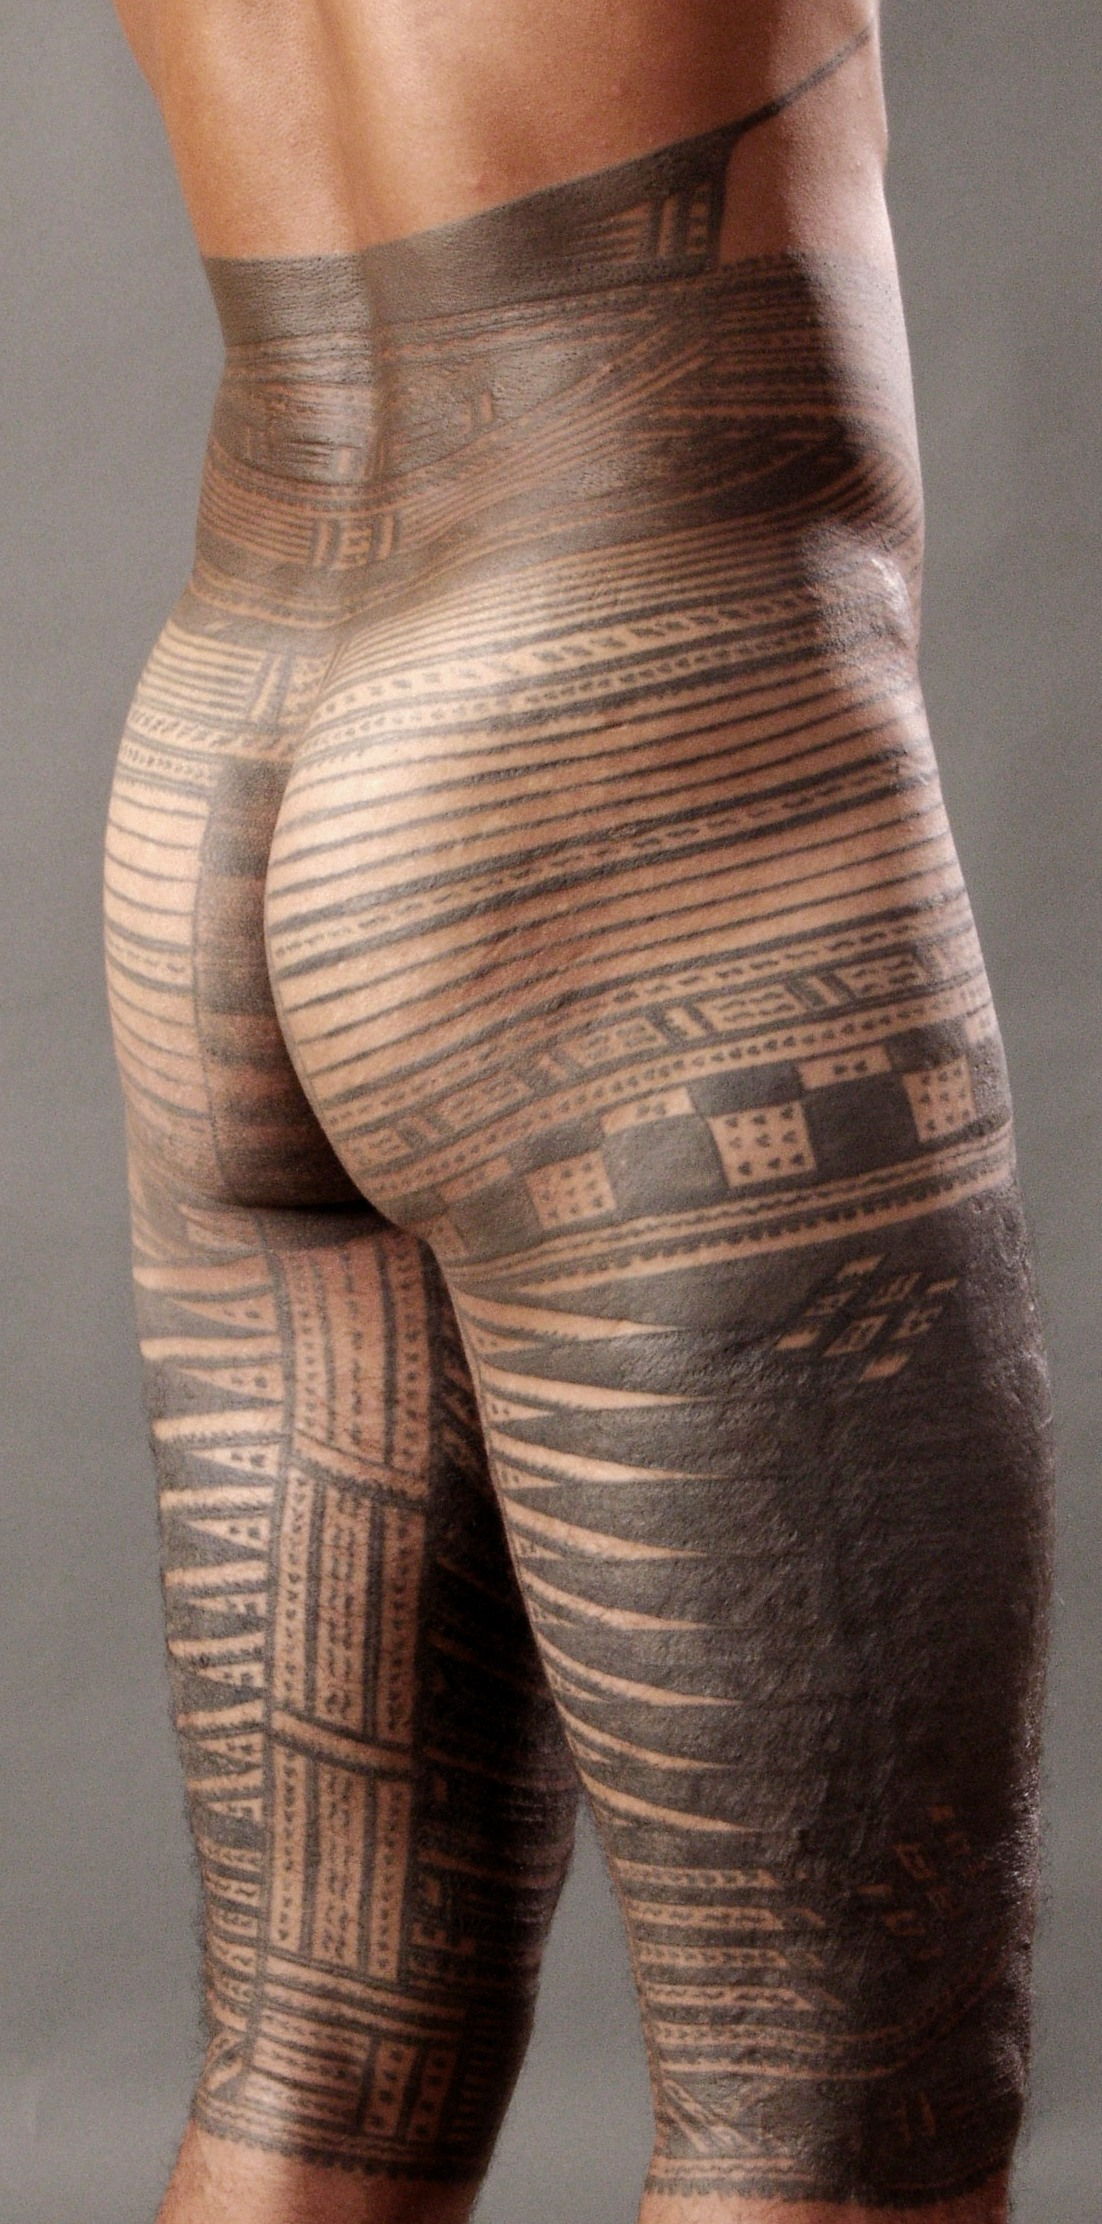 Samoan Male Tattoo: